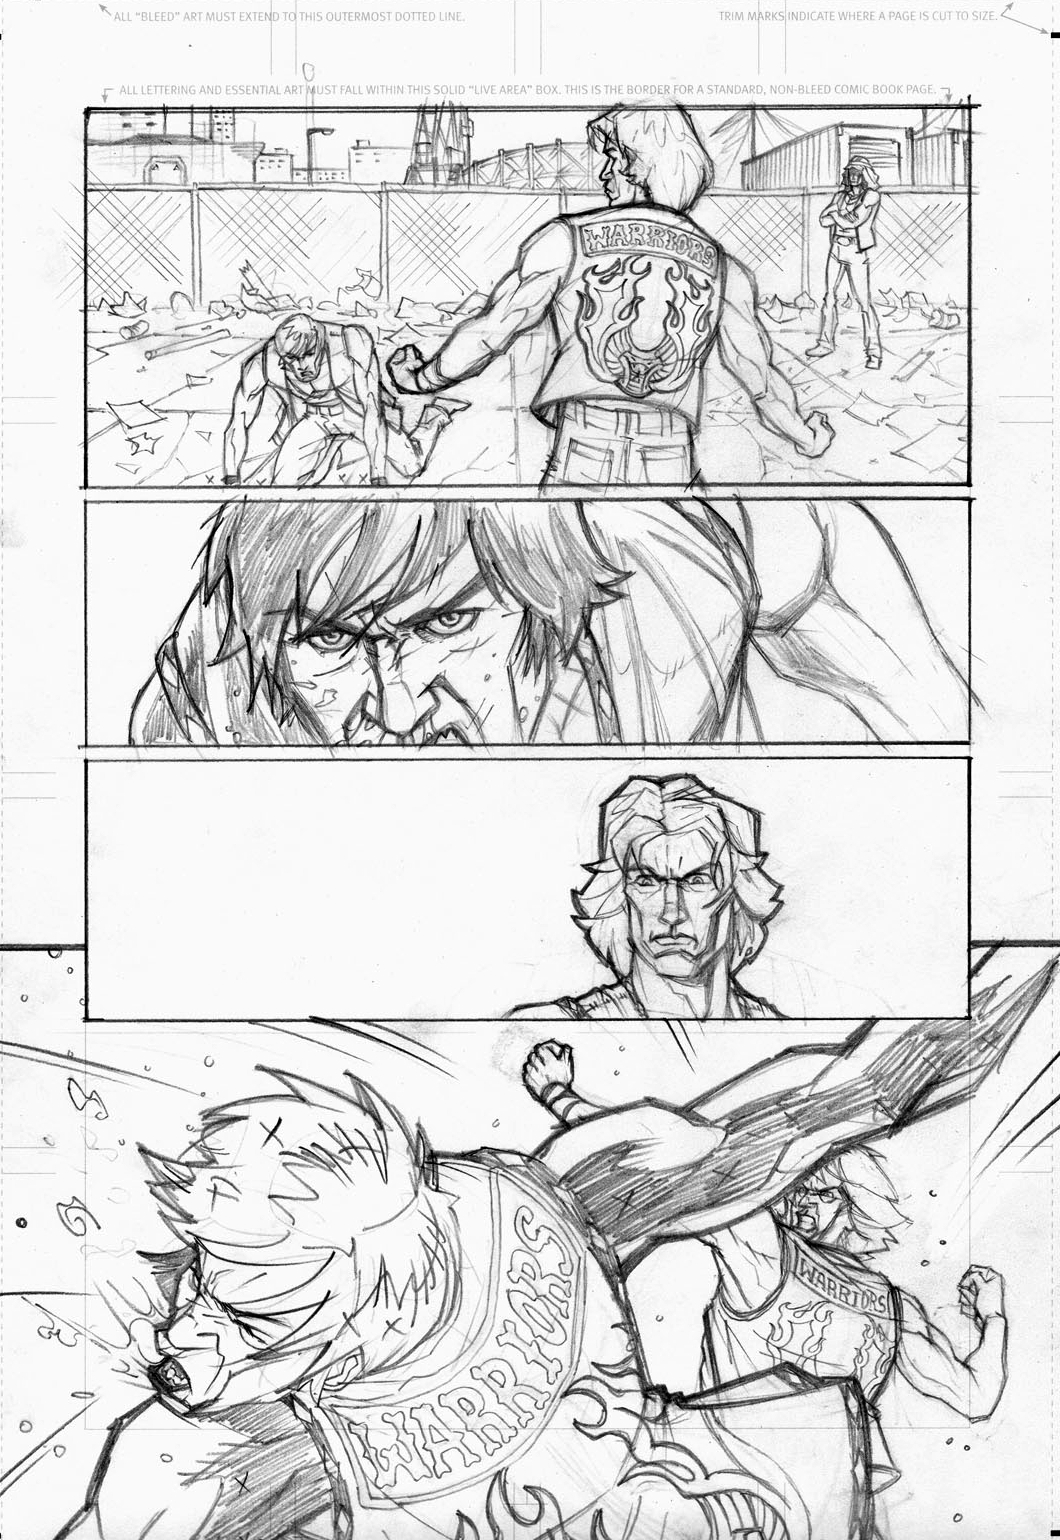 Herb Apon's pencils for page 2